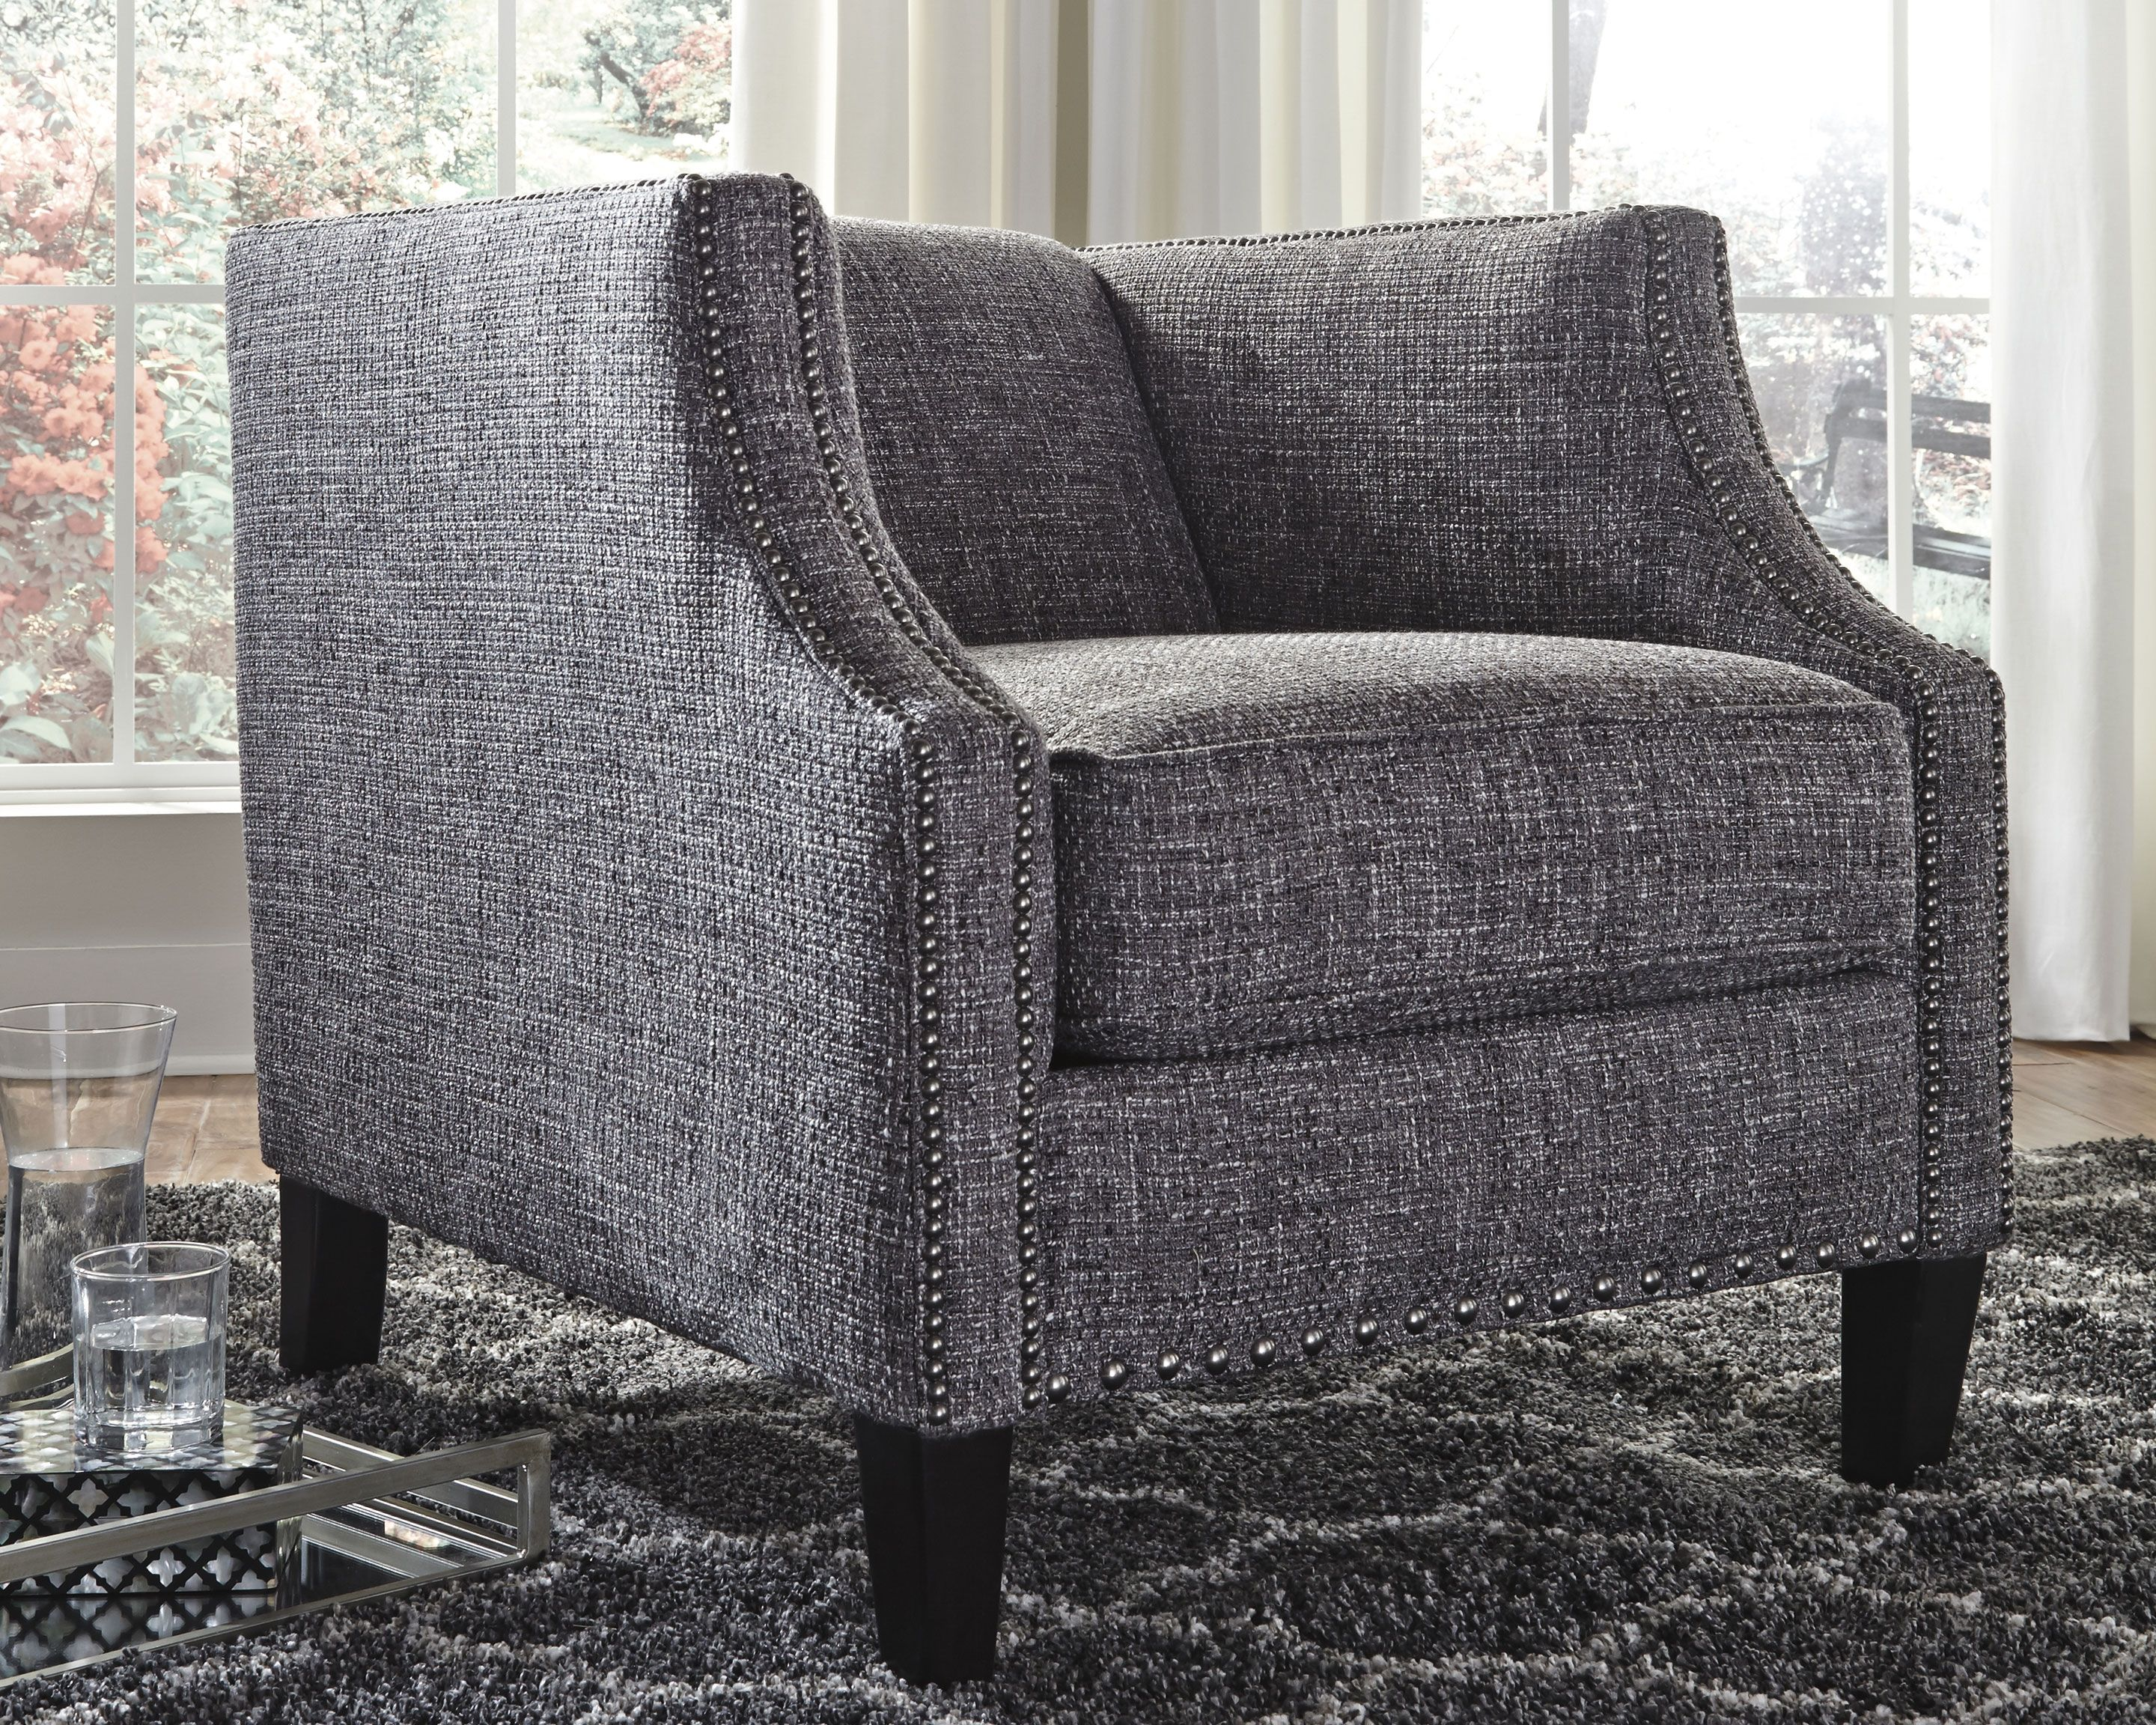 Felsbert Accent Chair Accent Chairs Chair Accent Chairs For Living Room